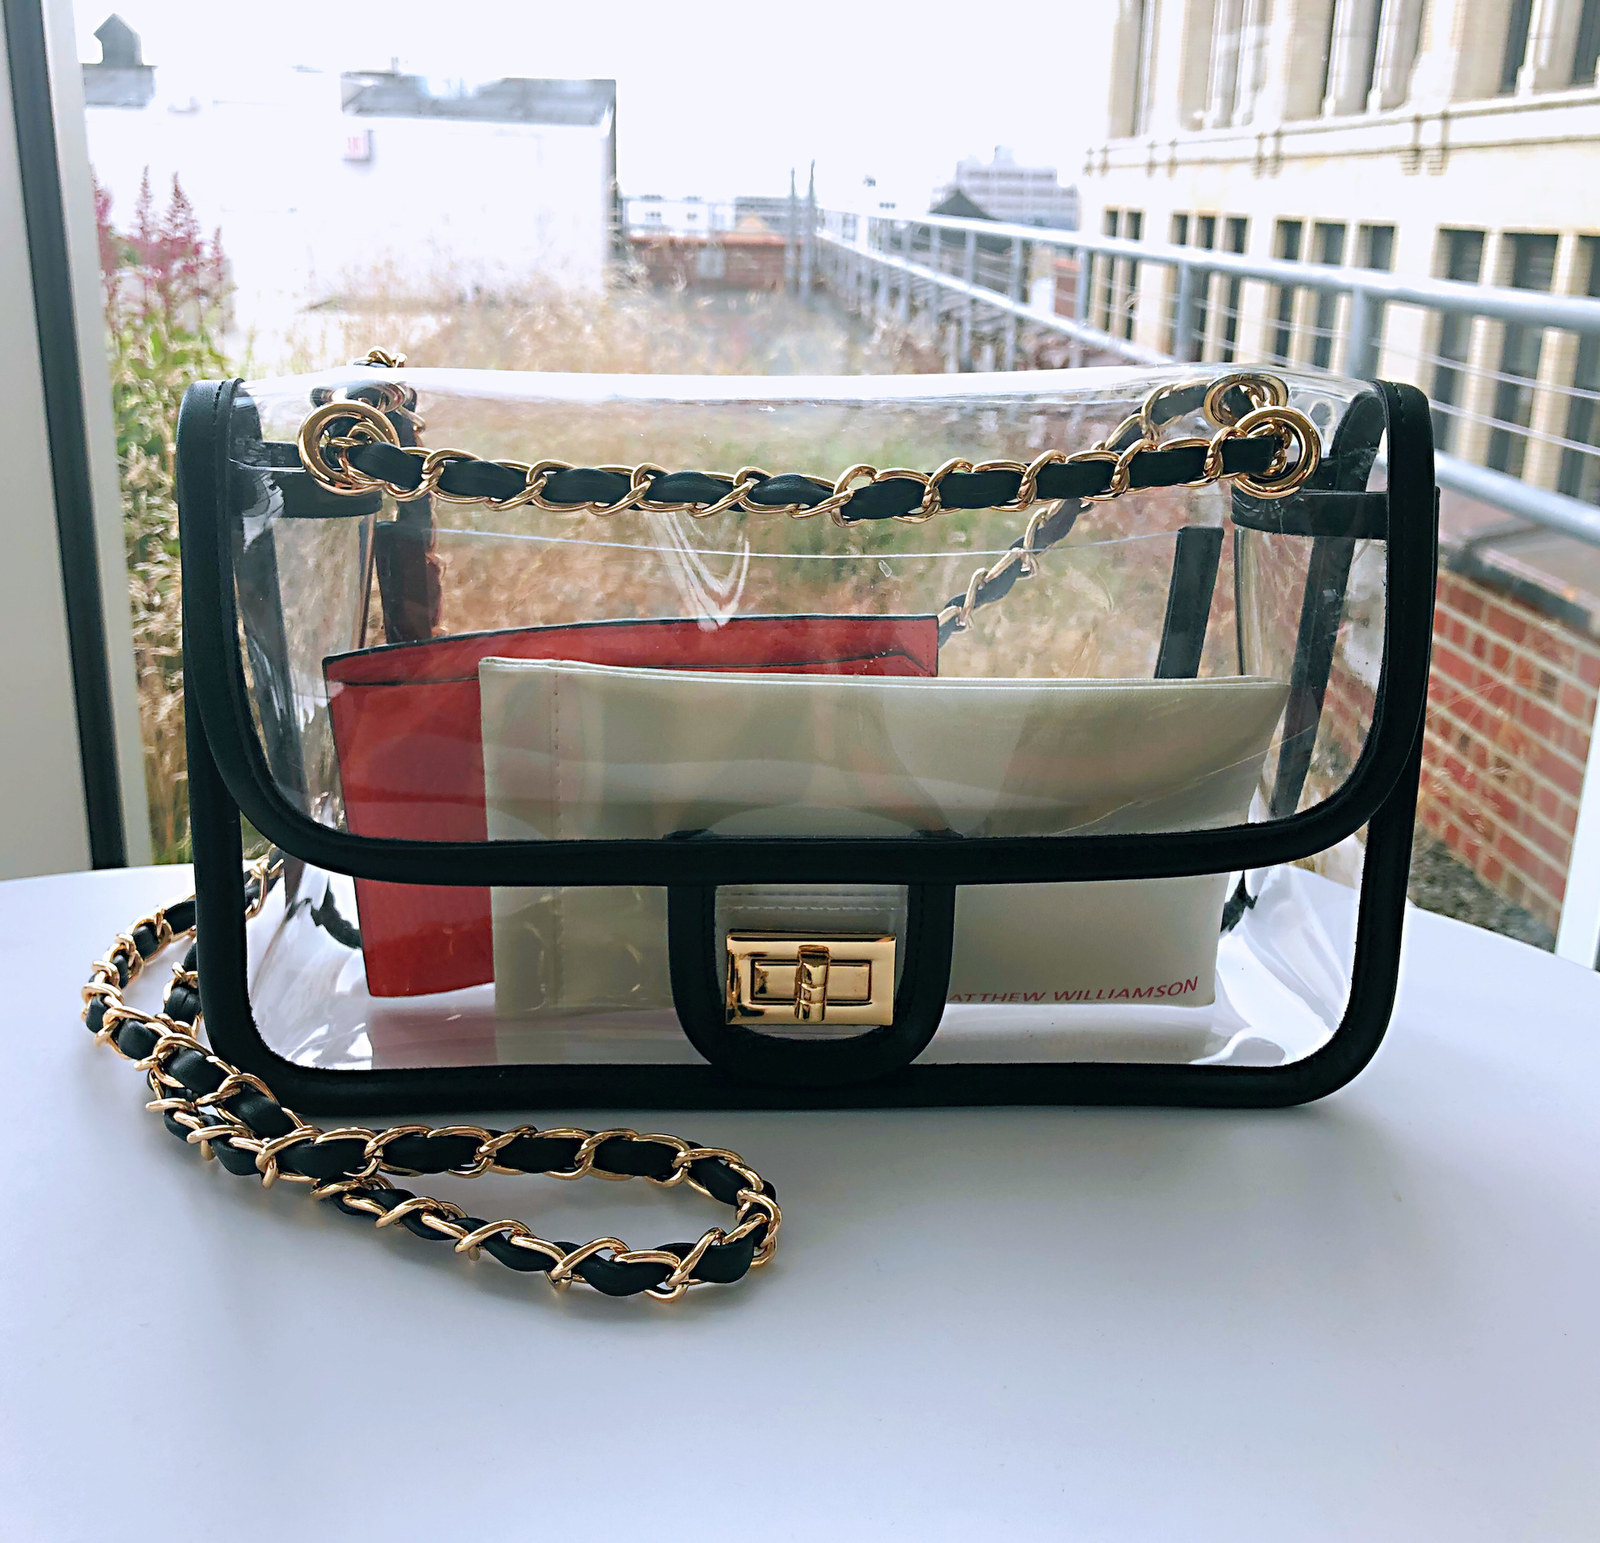 The clear plastic, black trimmed chain strap bag with a gold chain strap and turnlock with wallets inside. It's shaped like a classic Chanel bag